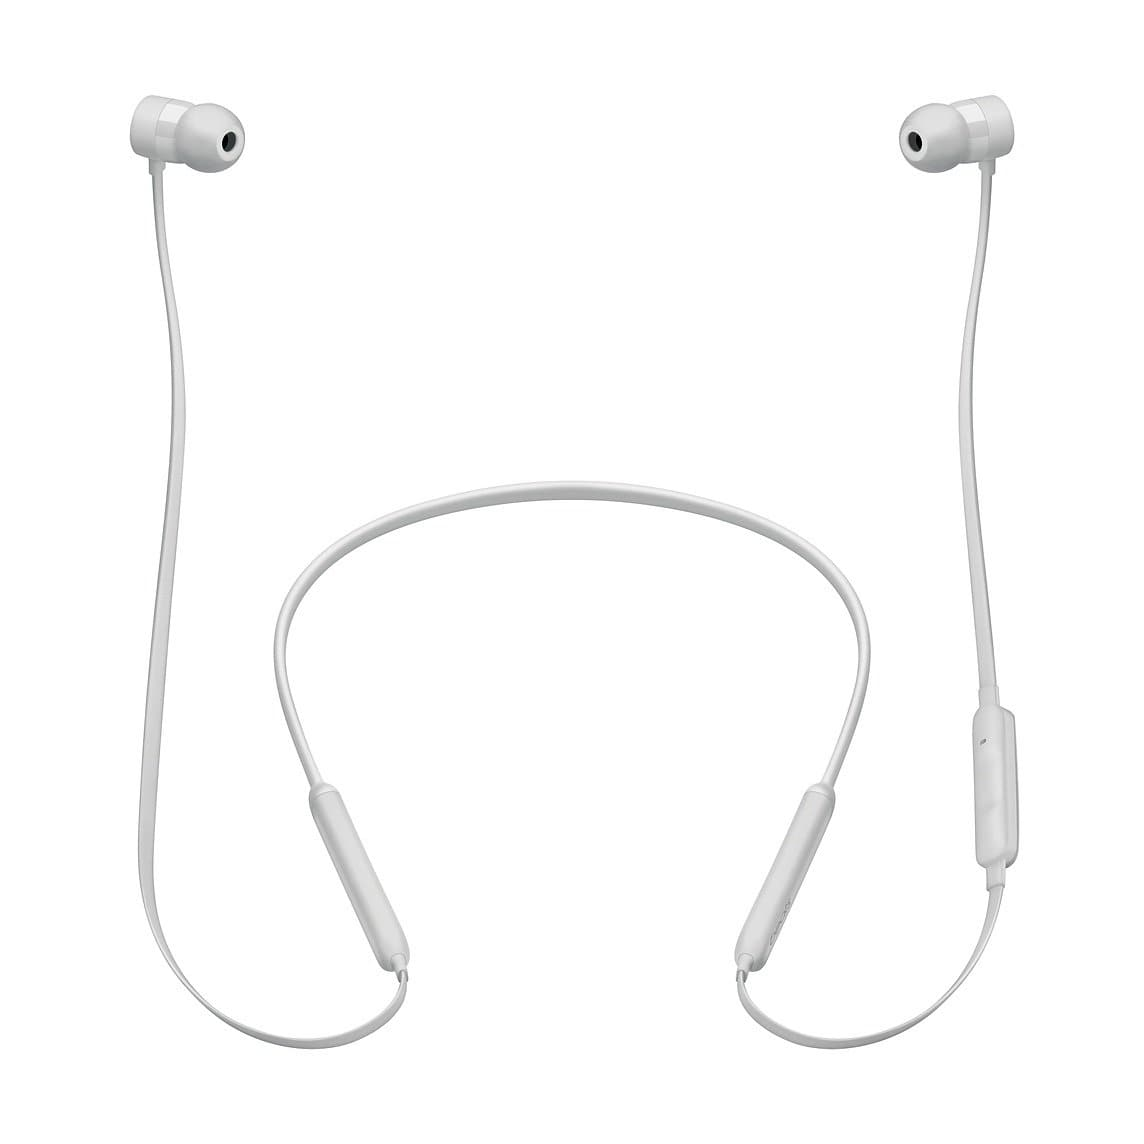 Beats by Dr. Dre BeatsX In-Ear Sound Isolating Bluetooth Headphones - Satin Silver - WiseTech Inc